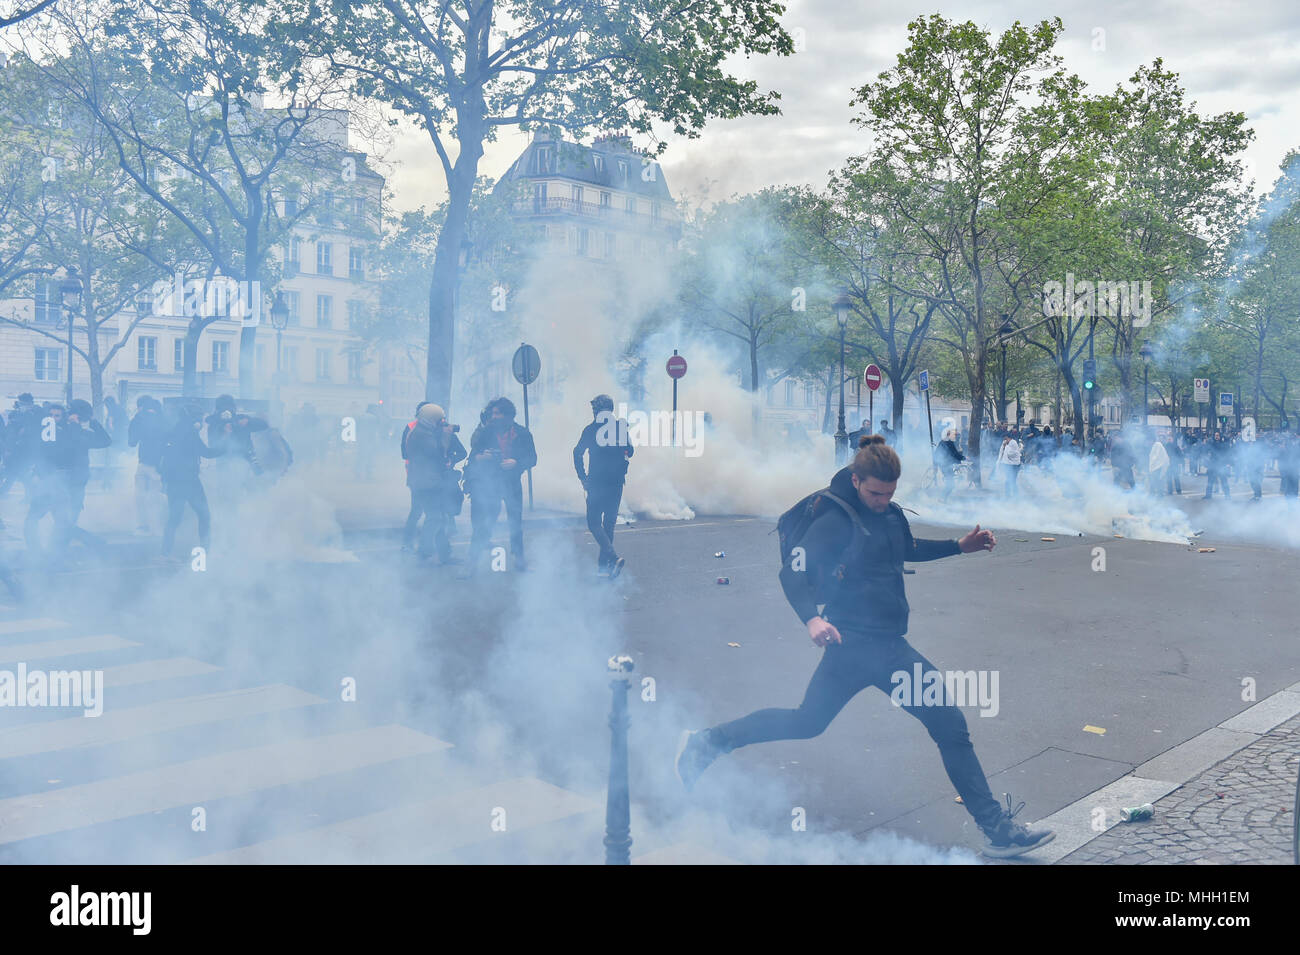 Paris, France. 1st May 2018. Paris police clash with protesters as demonstrations turn violent. PICTURED: A protester kicks a tear gas canister away from other protesters. Credit: Peter Manning/Alamy Live News - Stock Image